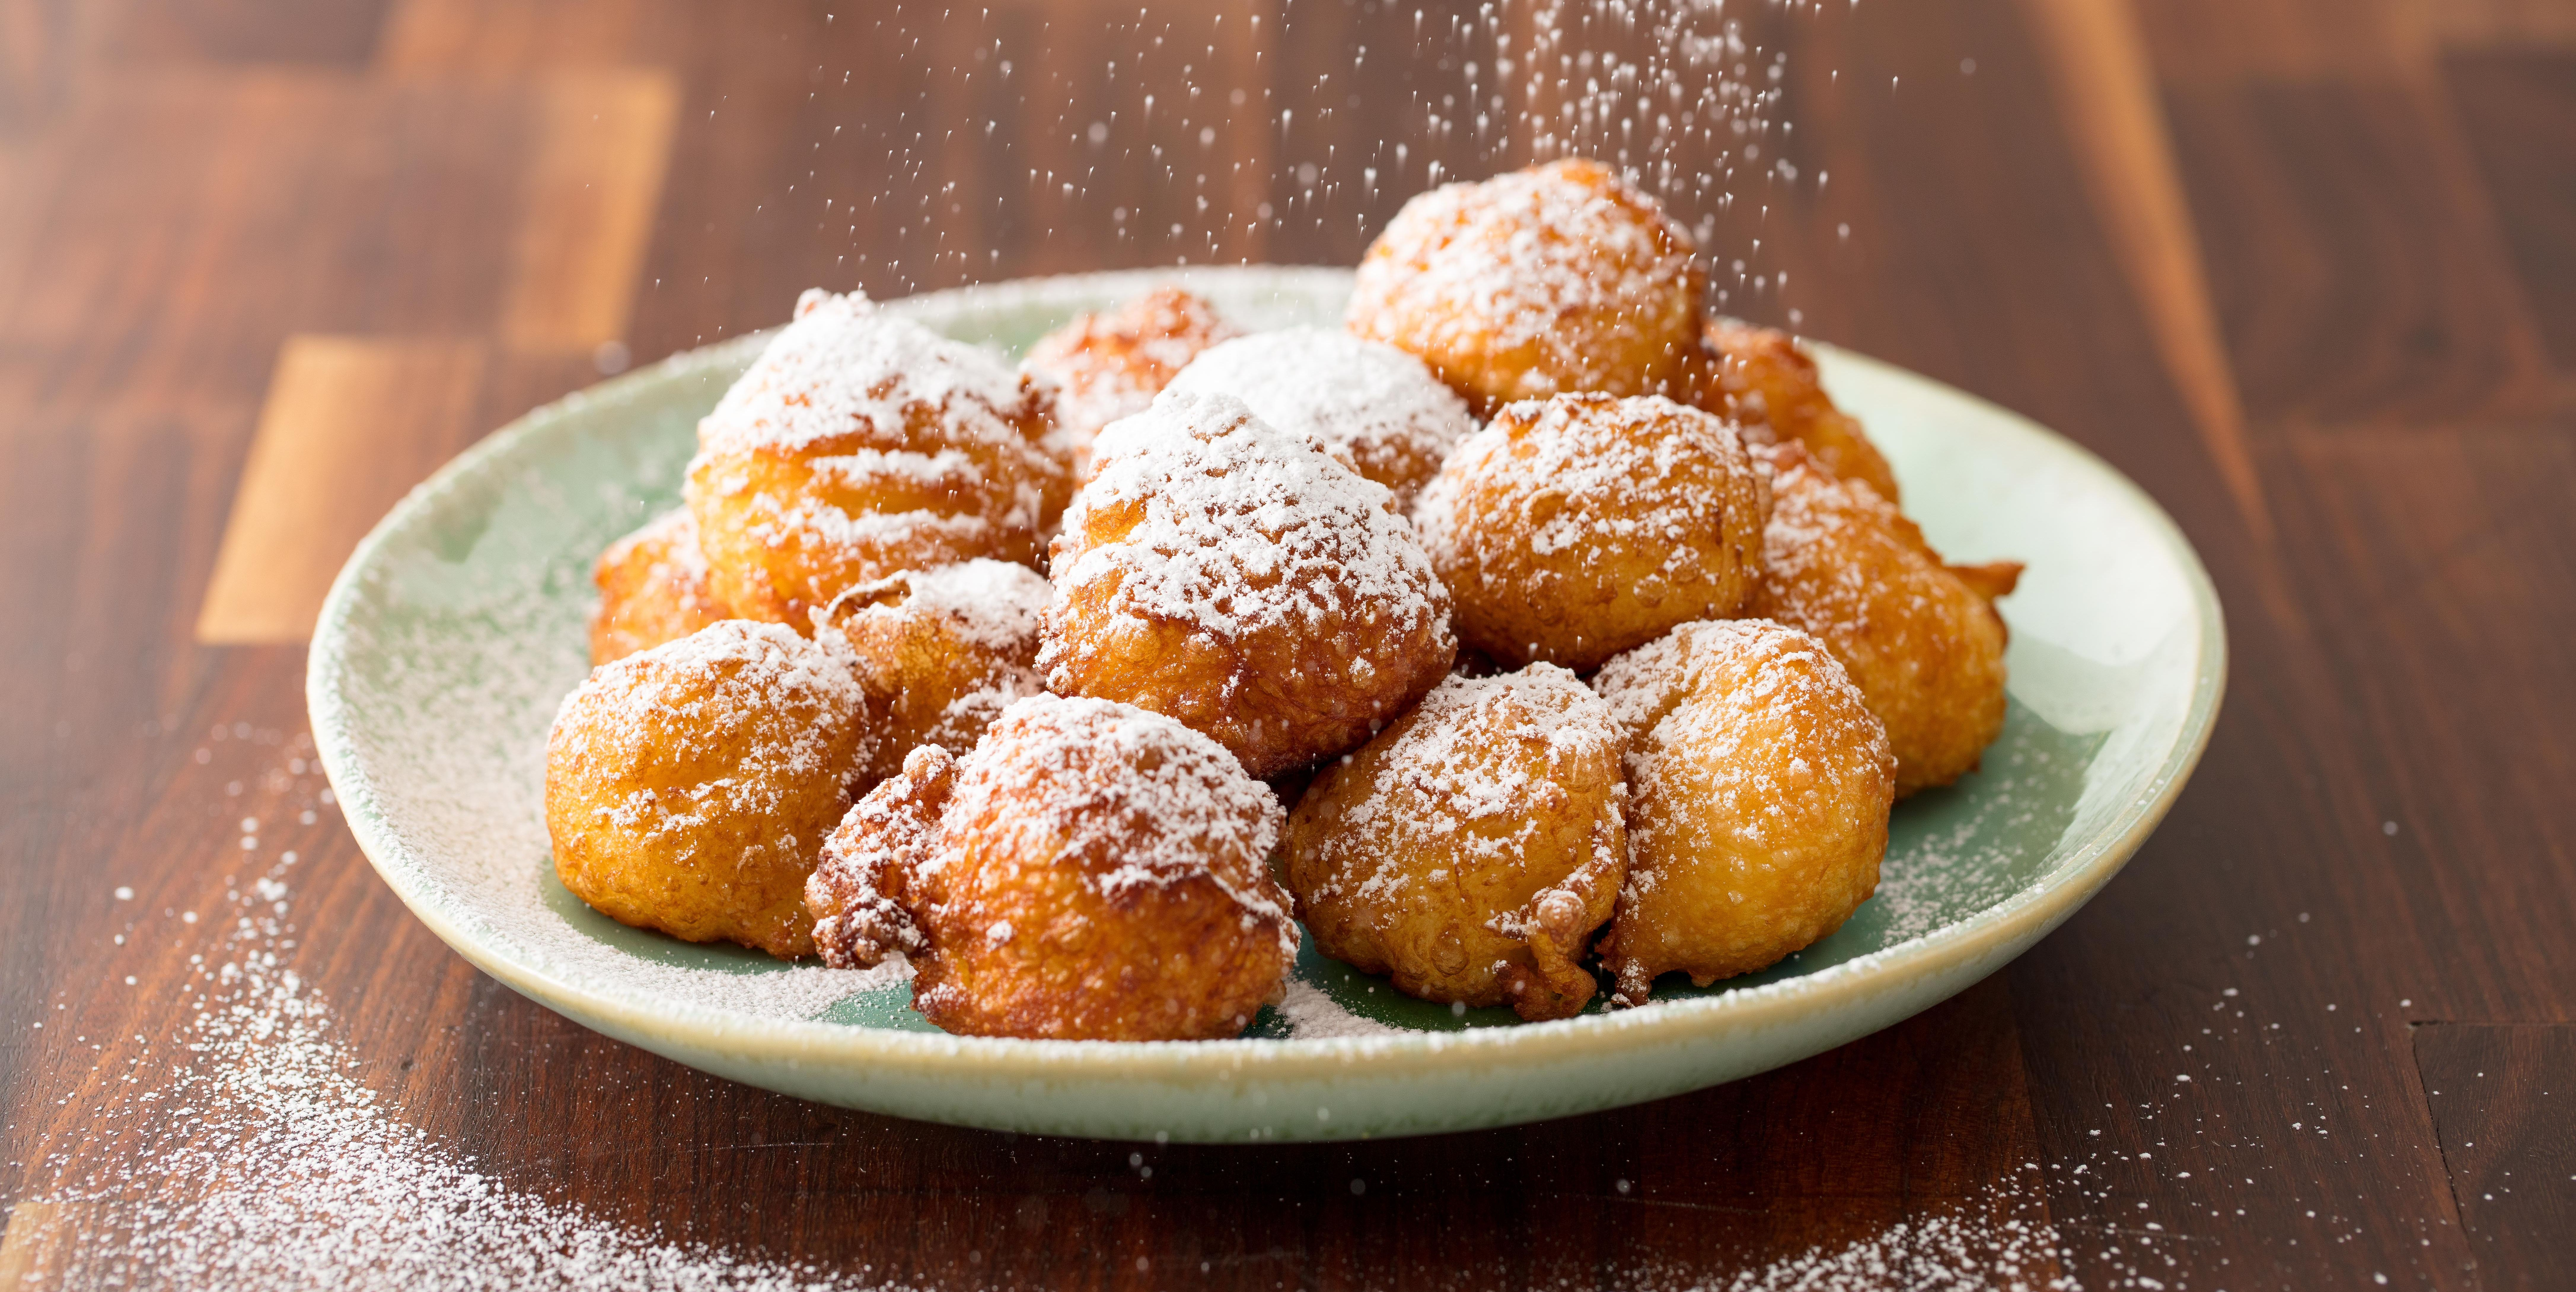 https://www.delish.com/cooking/recipe-ideas/a19464801/easy-beignets-recipe/